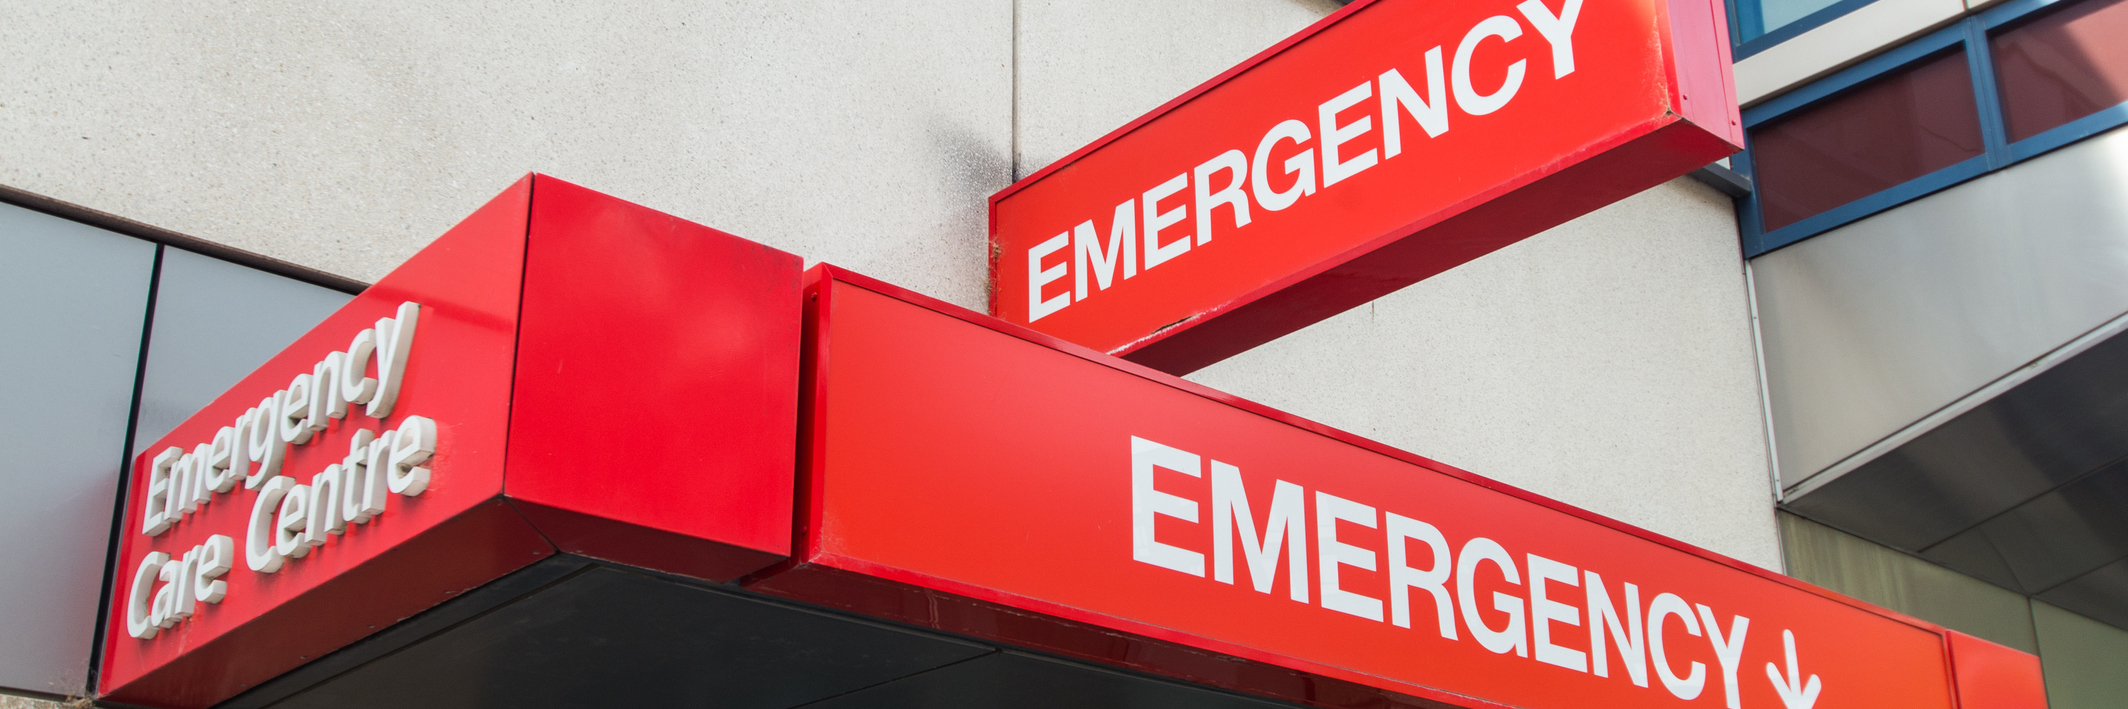 emergency room entrance